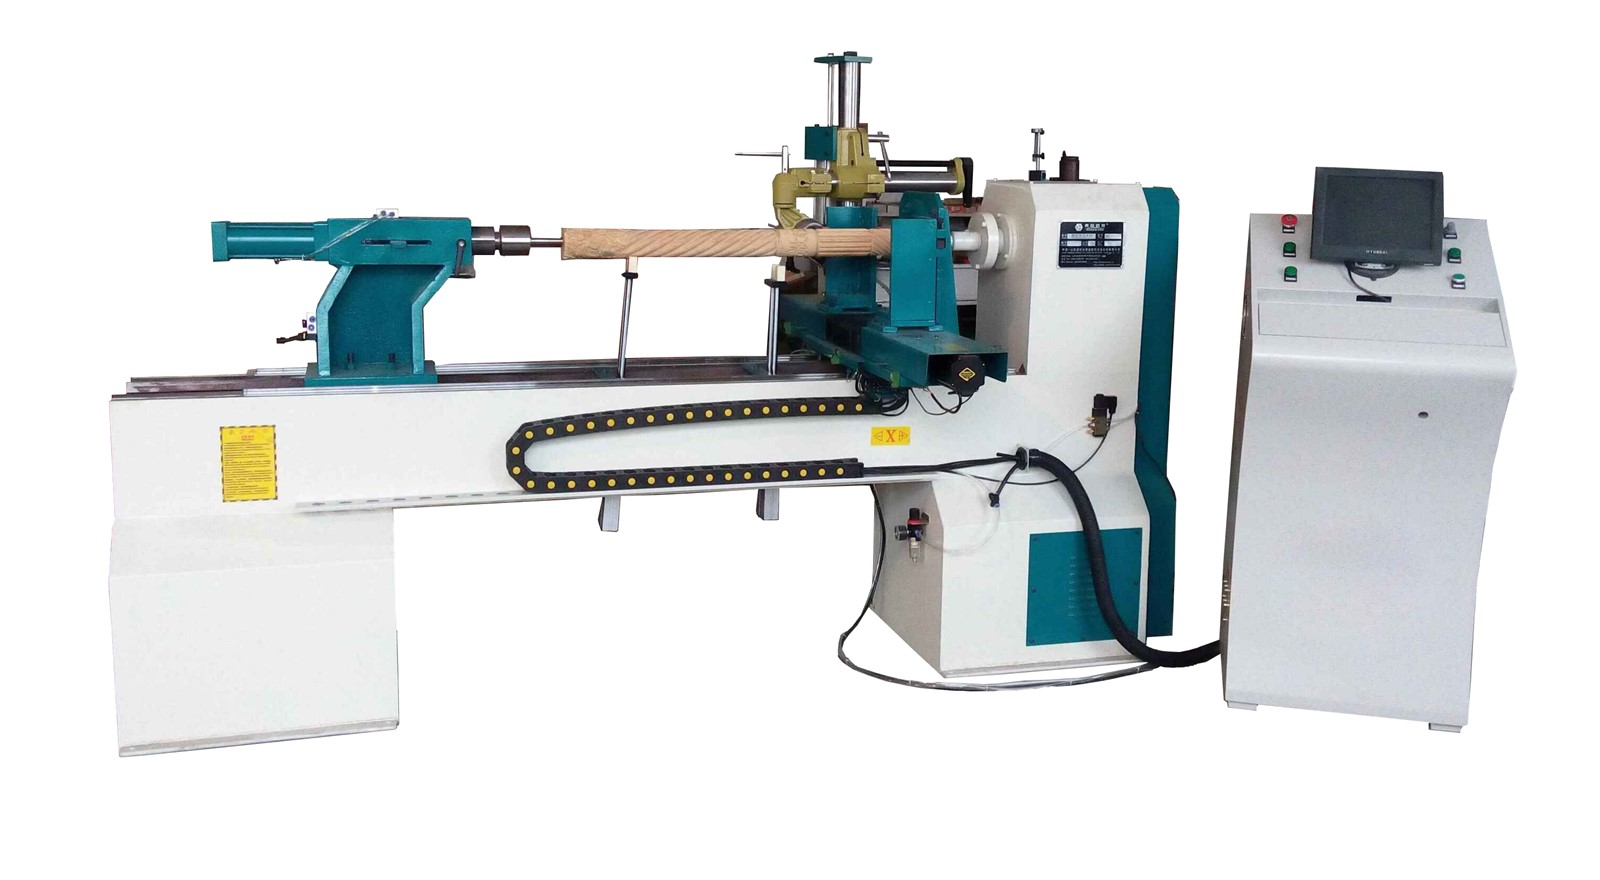 cnc wood turning machine cnc lathe for wood (DL1500) - China CNC ...